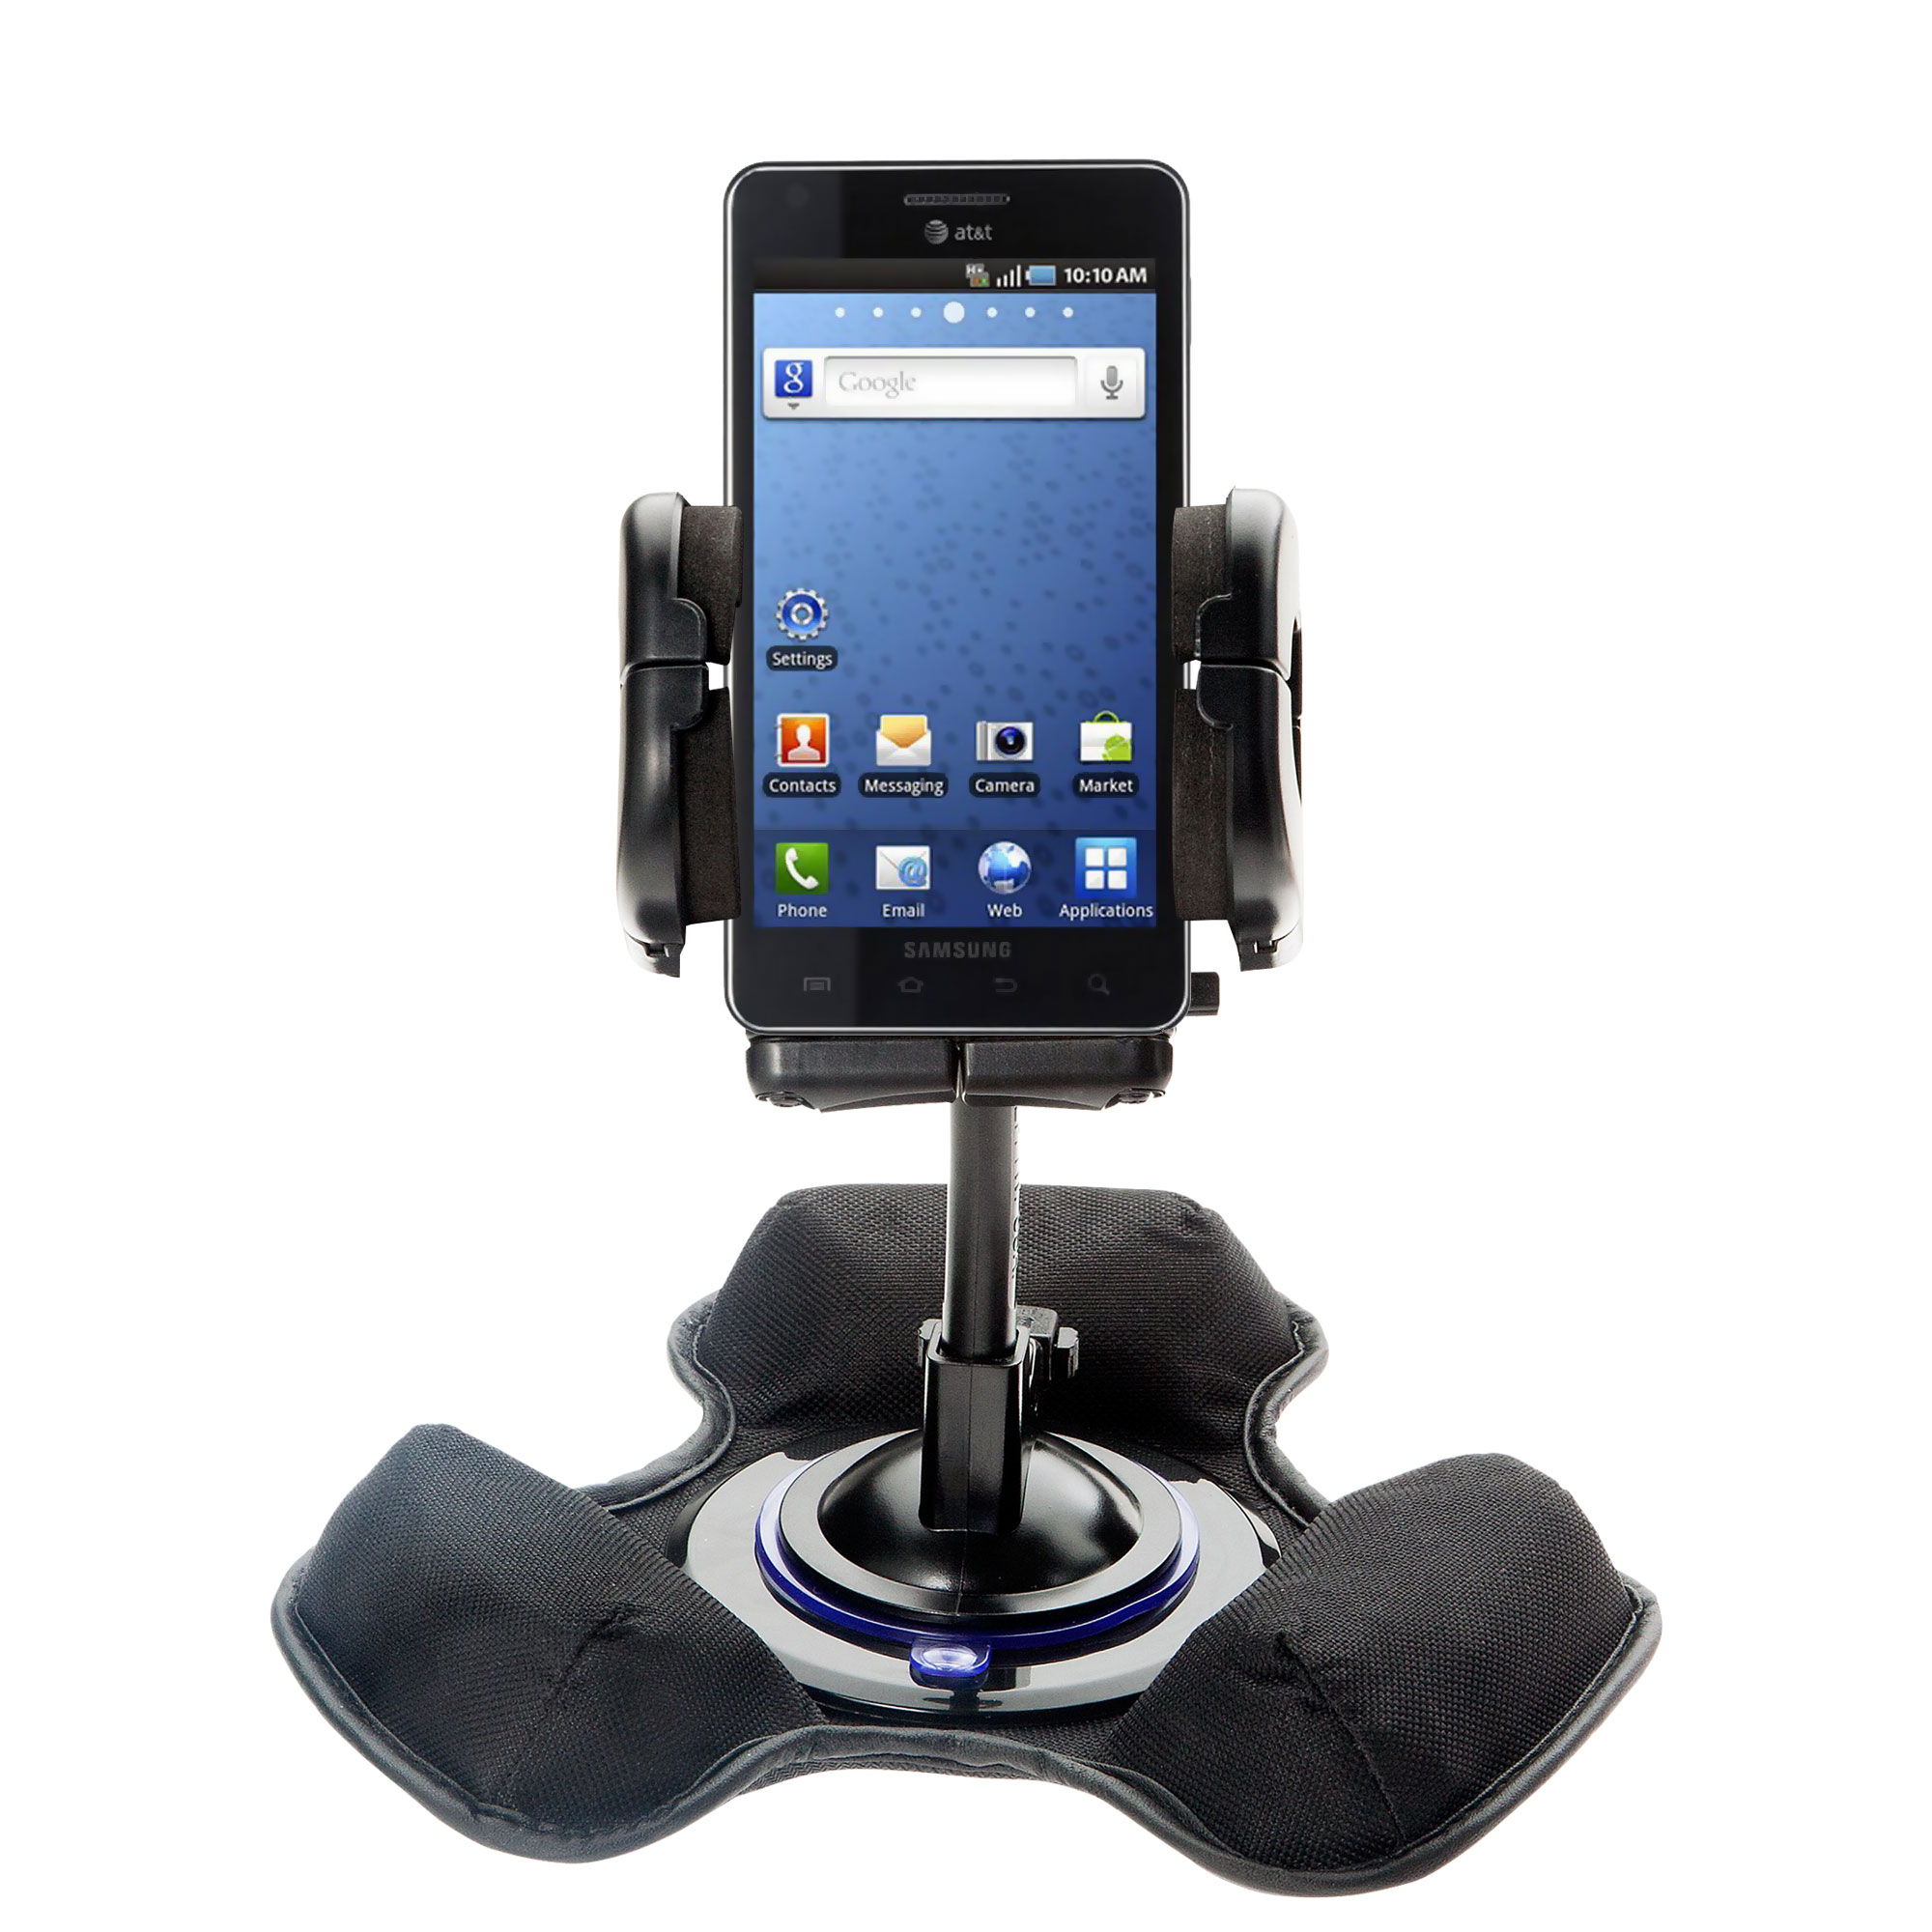 Car / Truck Vehicle Holder Mounting System for Samsung Infuse 4G Includes Unique Flexible Windshield Suction and Universal Dashboard Mount Options